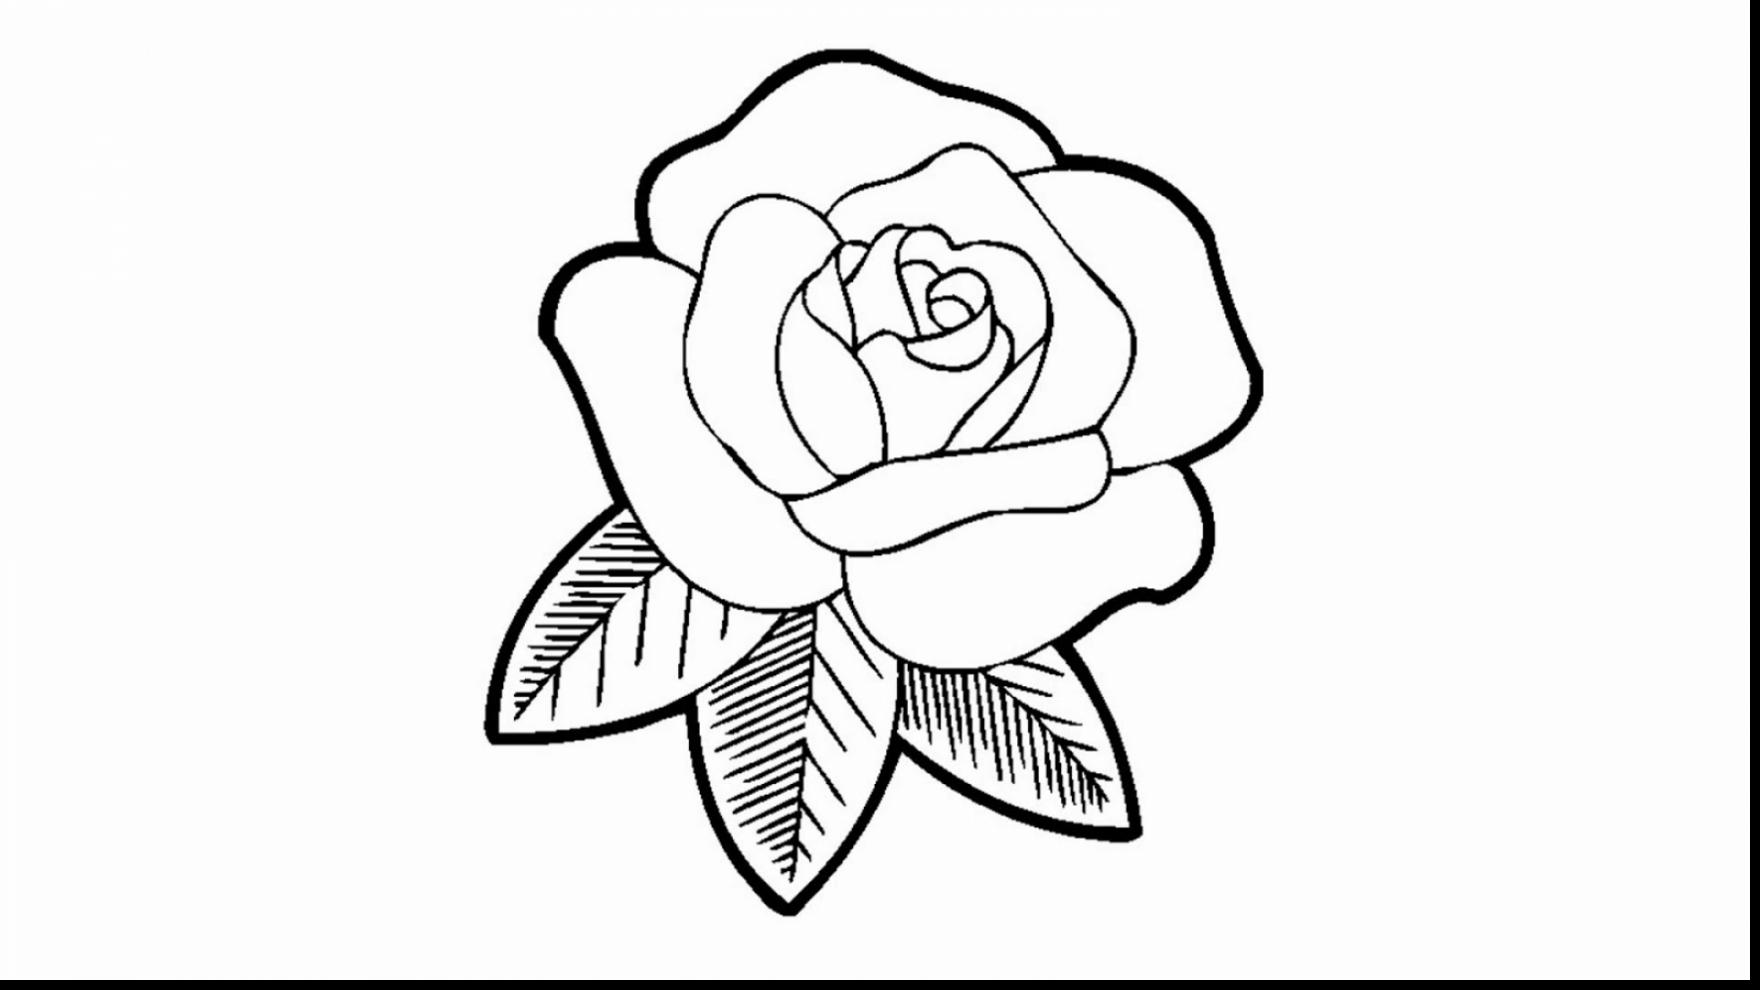 Rose Pictures Drawing at GetDrawings.com | Free for personal use ...